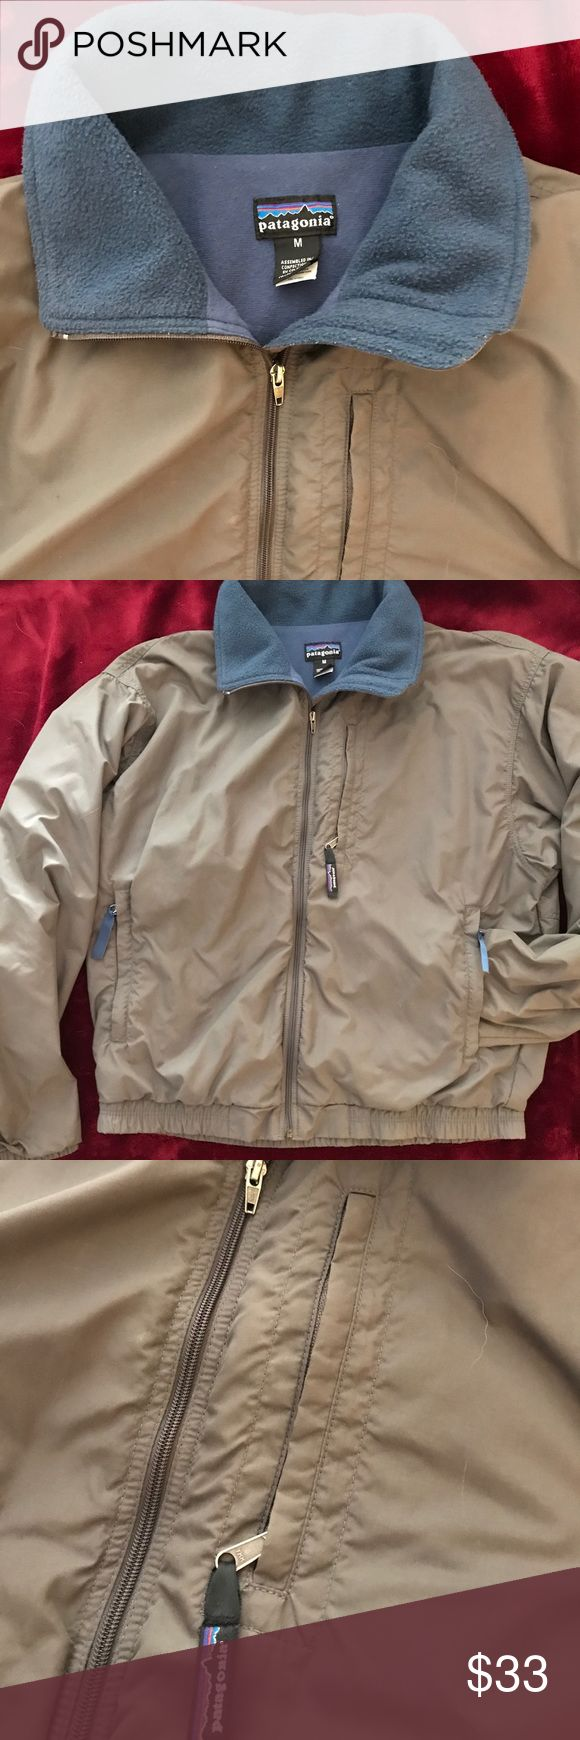 ❤️SALE til Midnite❤️Patagonia Fleece Windbreaker Patagonia W's M Fleece Lined Windbreaker gray and blue, good used condition, minor sleeve seam loosened and elastic in sleeves is not tight from wearing the jacket over sweater layers. Nice weight and neutral colors. Nice zippered hand pockets and chest pocket. Lasting Patagonia quality! Patagonia Jackets & Coats